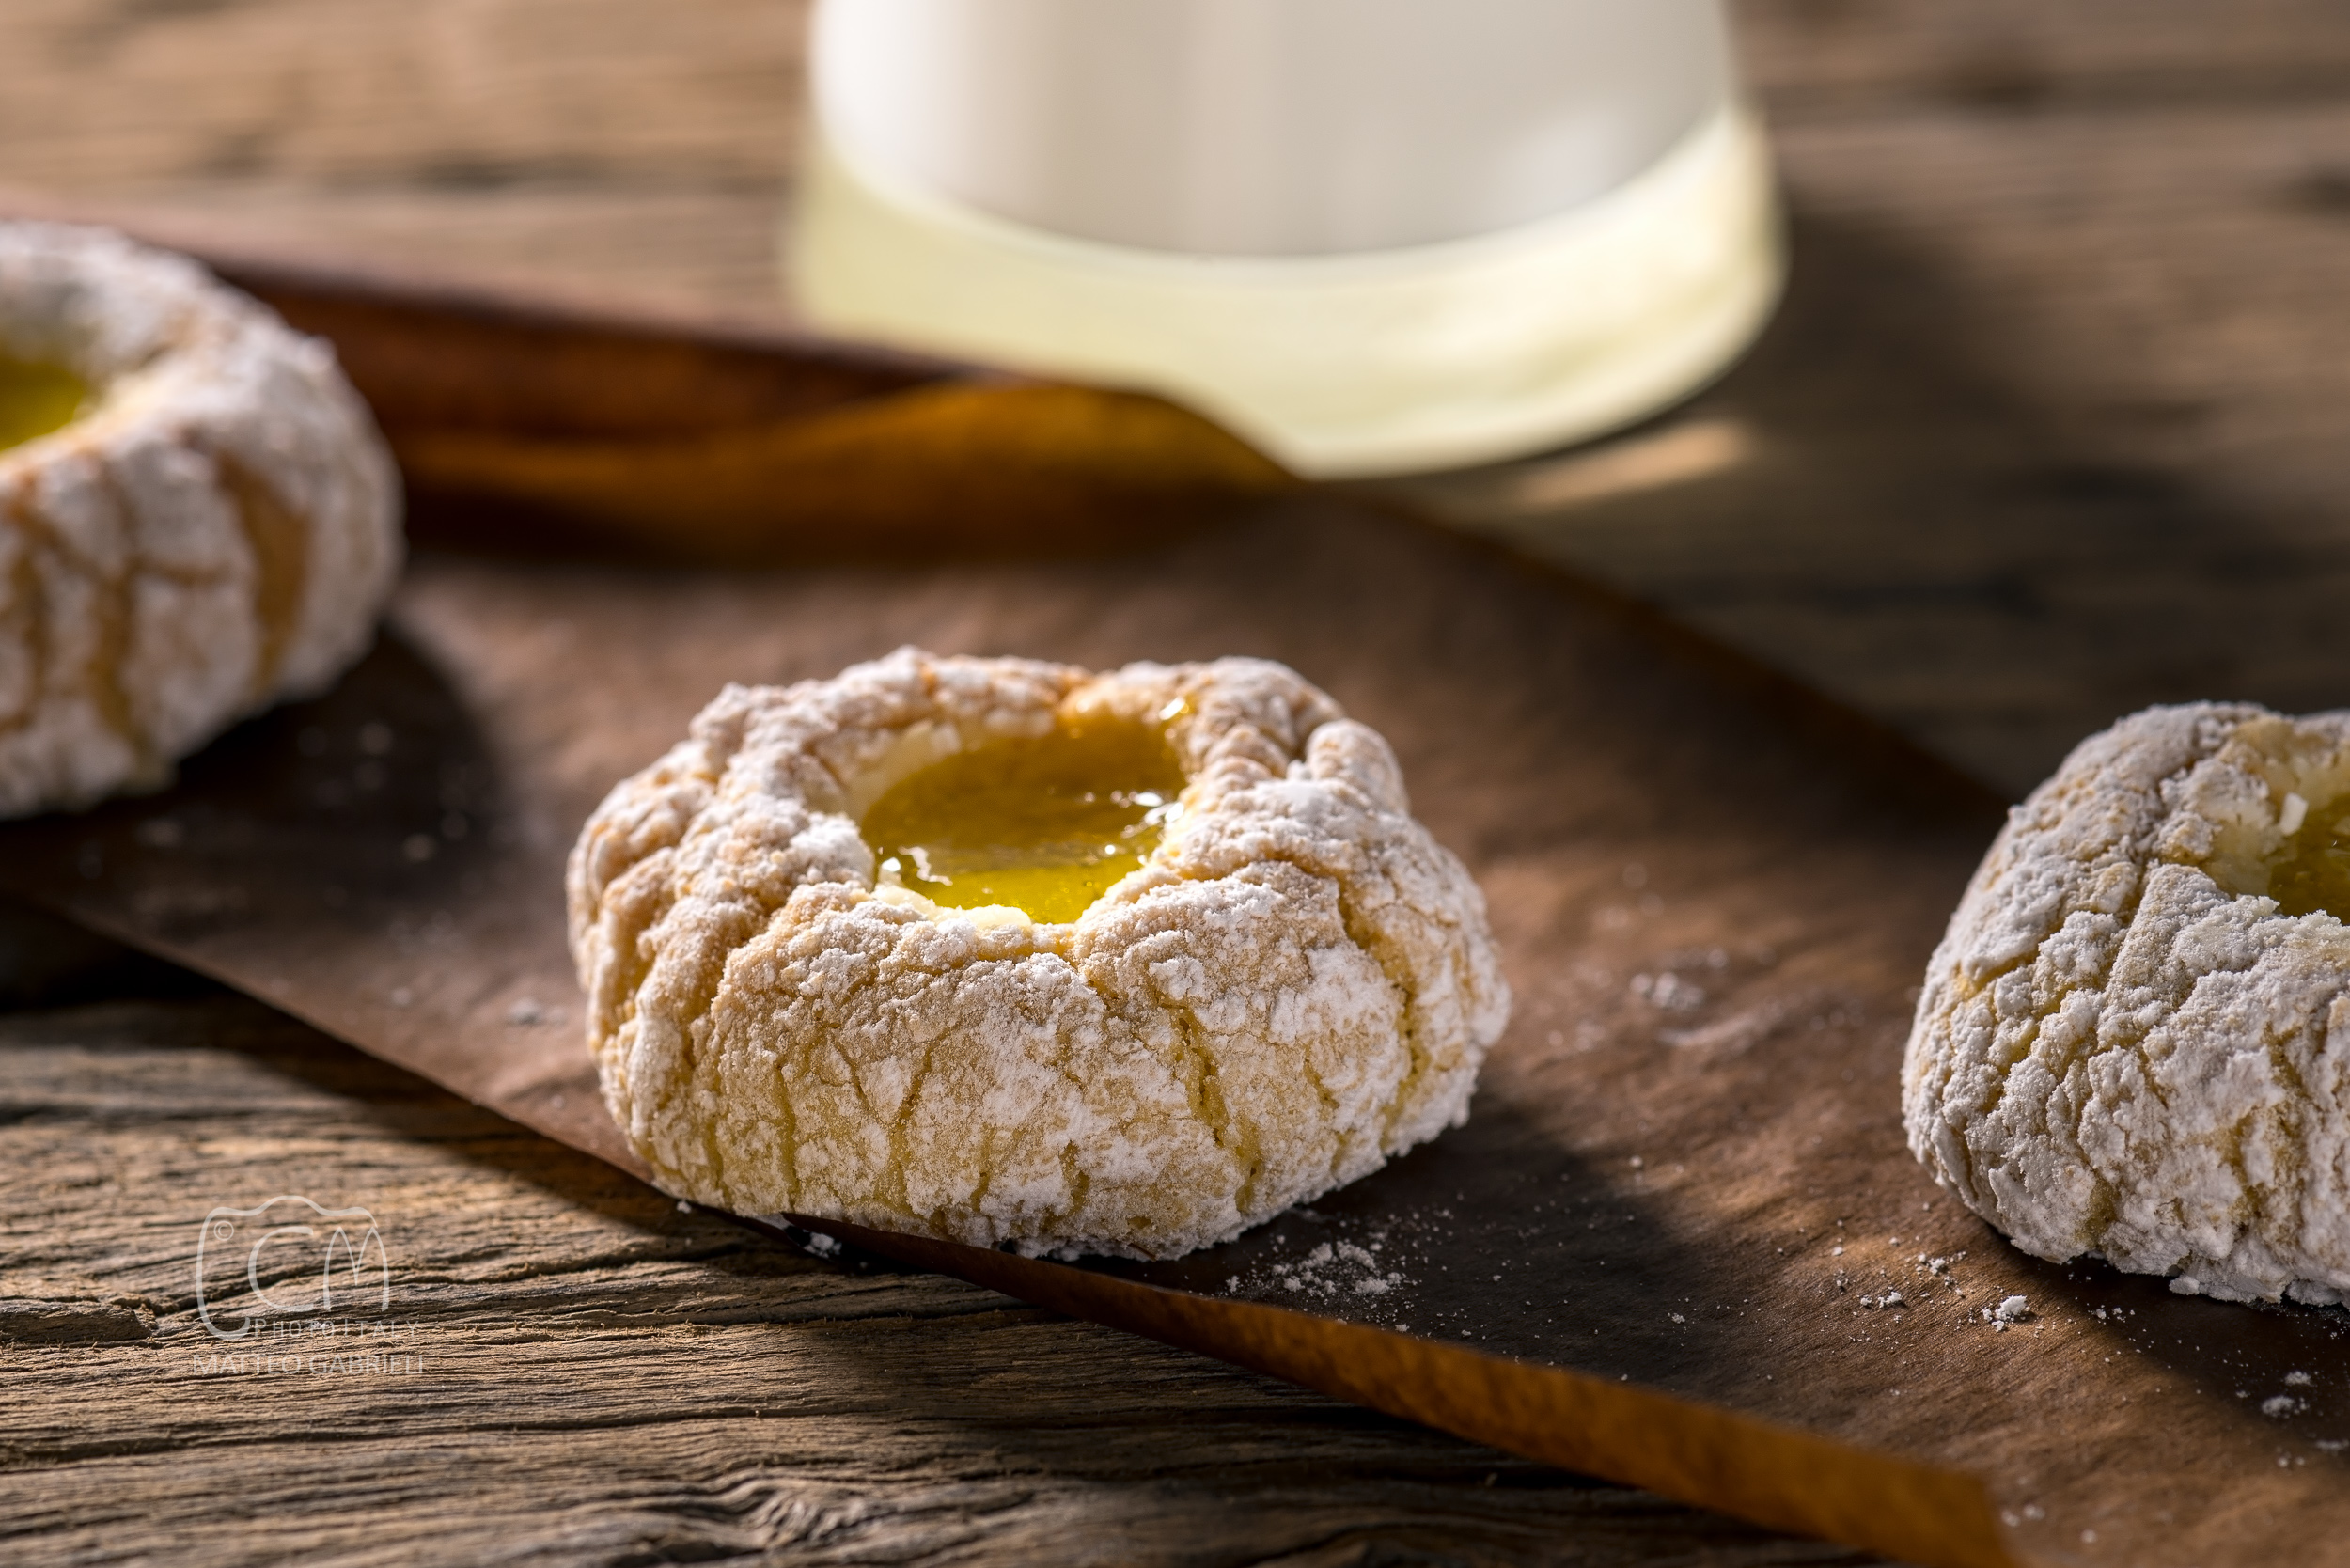 Delicious homemade sicilian almond cookies with lemon jam, Italian pastry